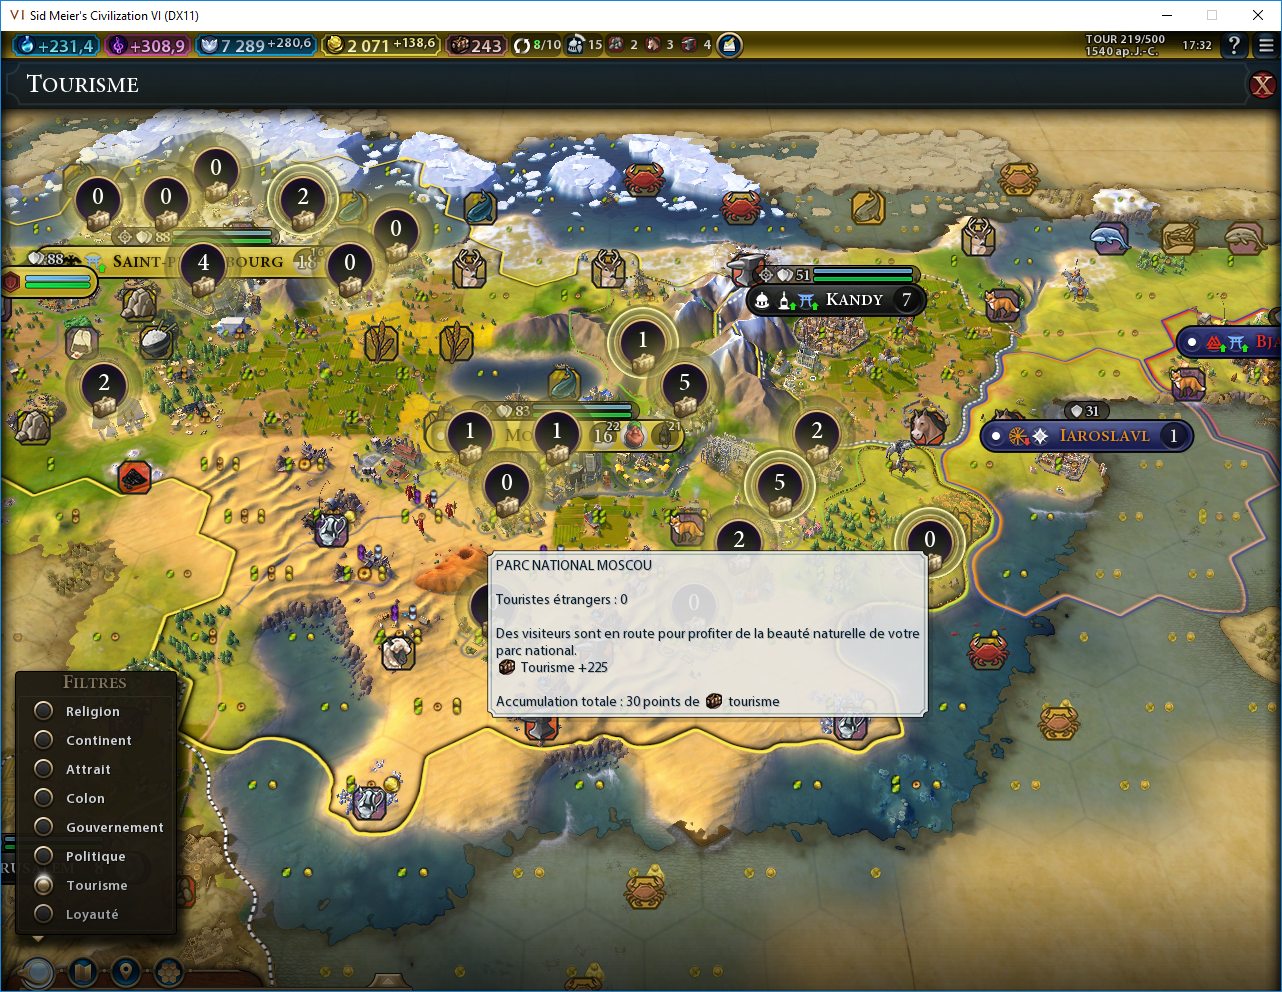 4th ring culture does work | CivFanatics Forums